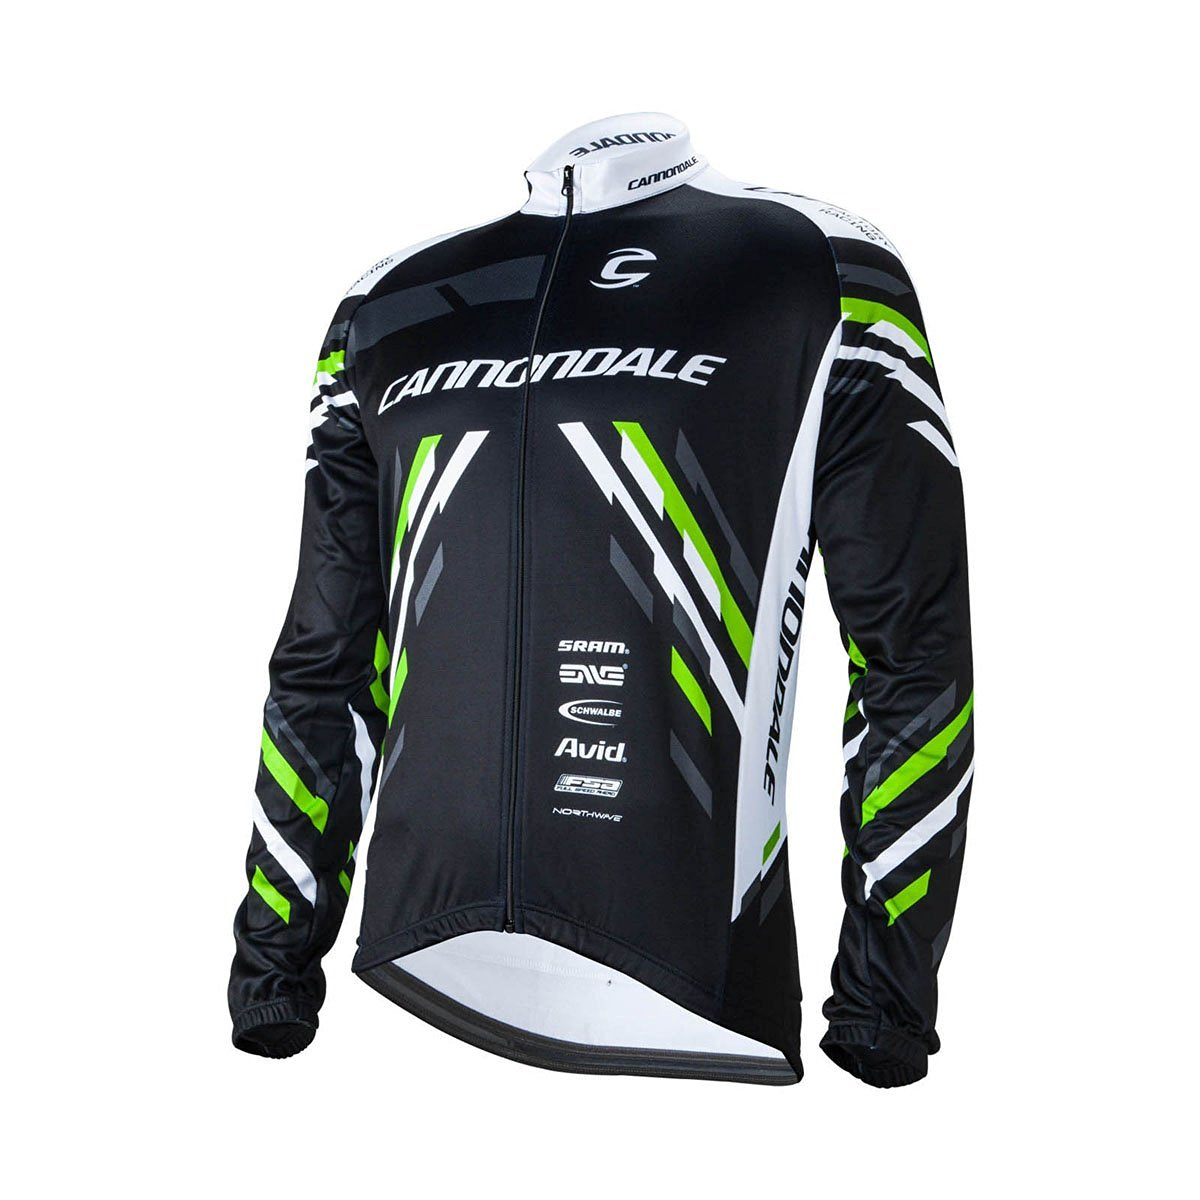 Get Quotations · Cannondale CFR Team Long Sleeve Jersey c4d5e0a90